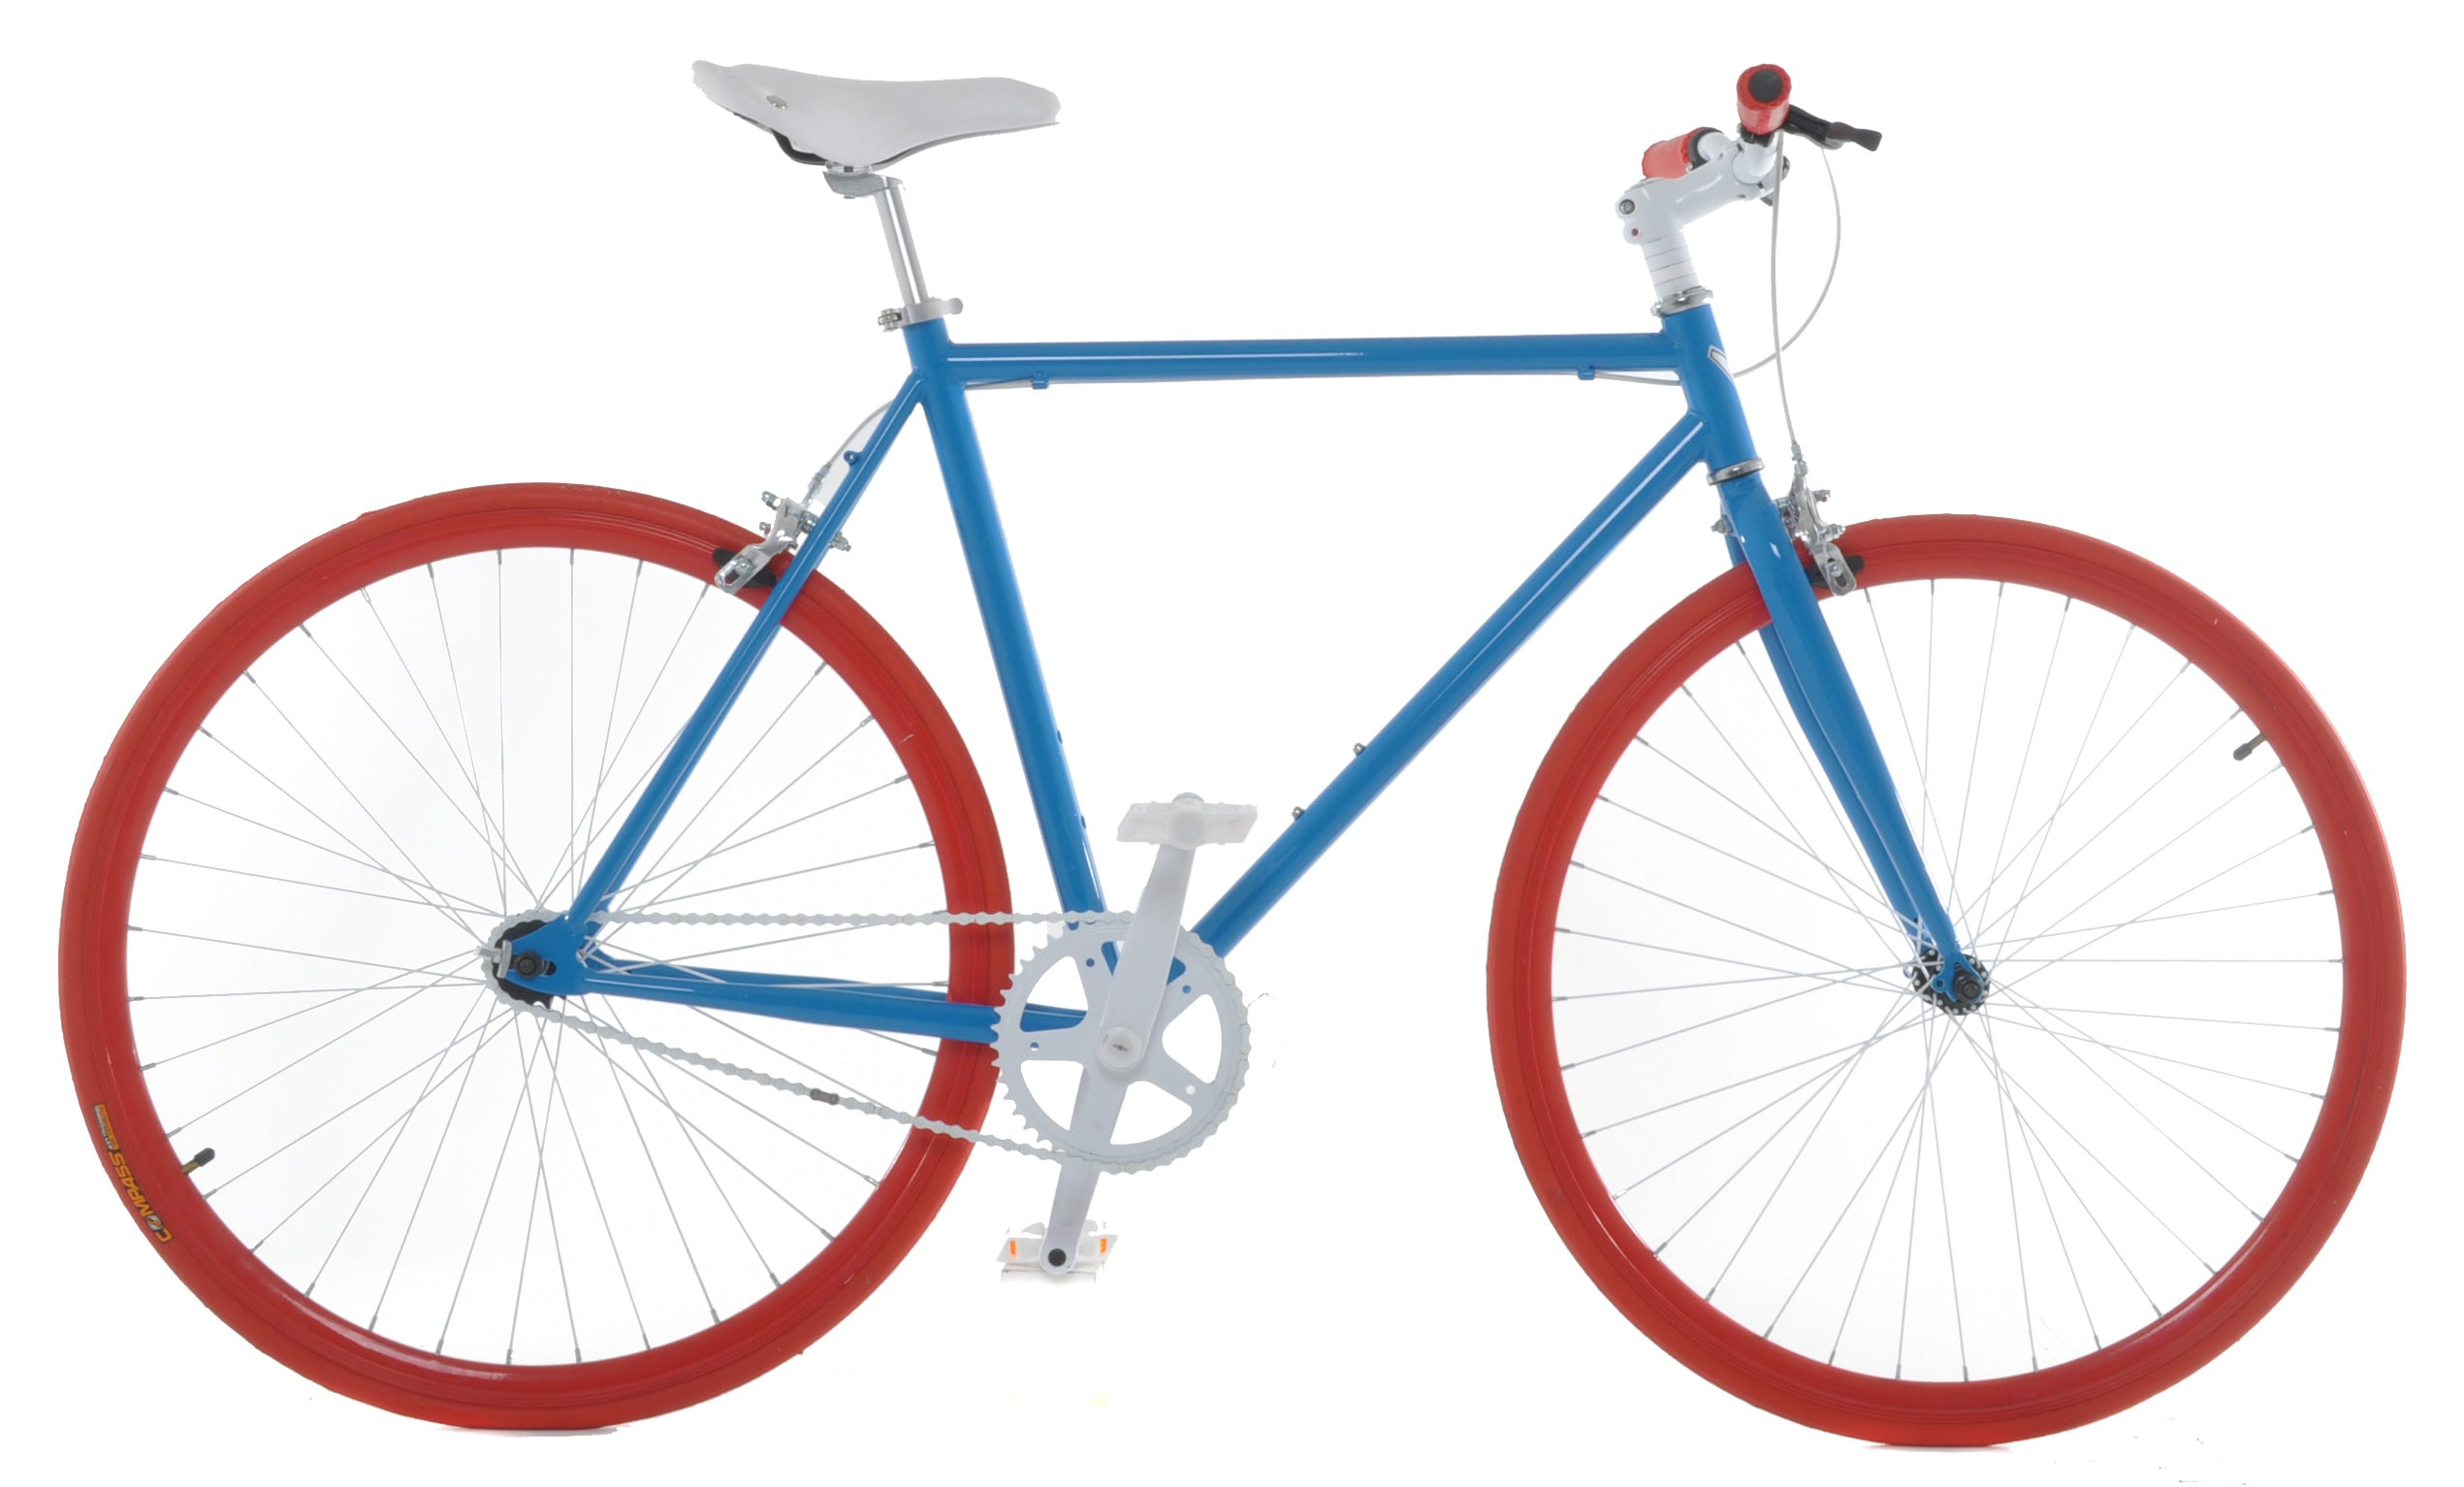 products/700-FIXIE-BLU-RED__01.jpg_2_0b0b8e8c-9cb4-40f5-8046-e4f64cec7521.jpg